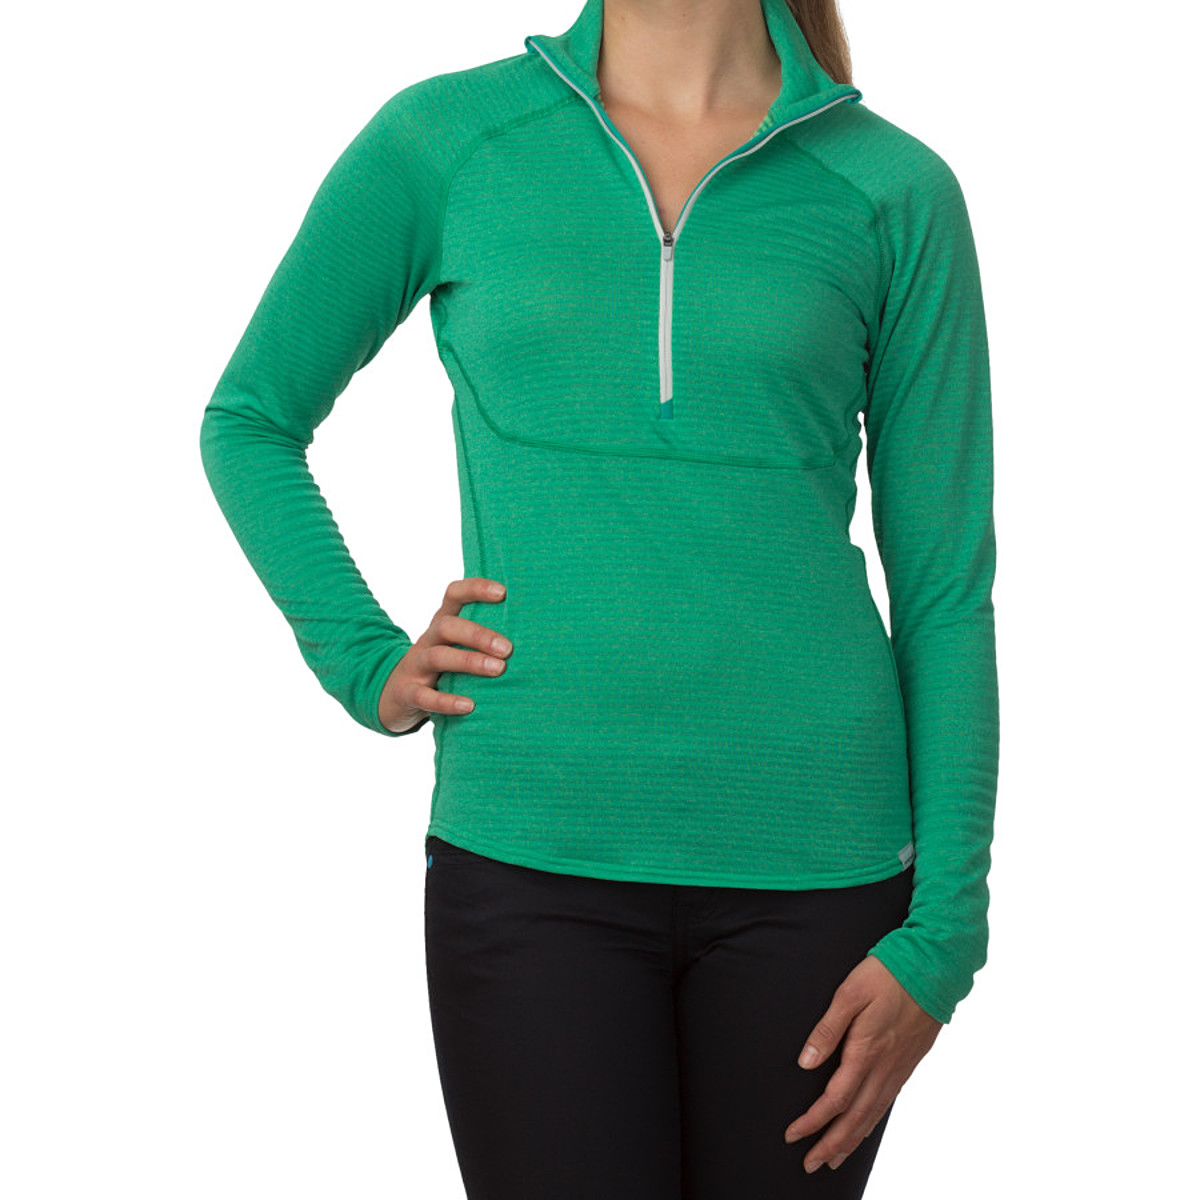 photo: Patagonia Women's Capilene 4 Expedition Weight Zip-Neck base layer top